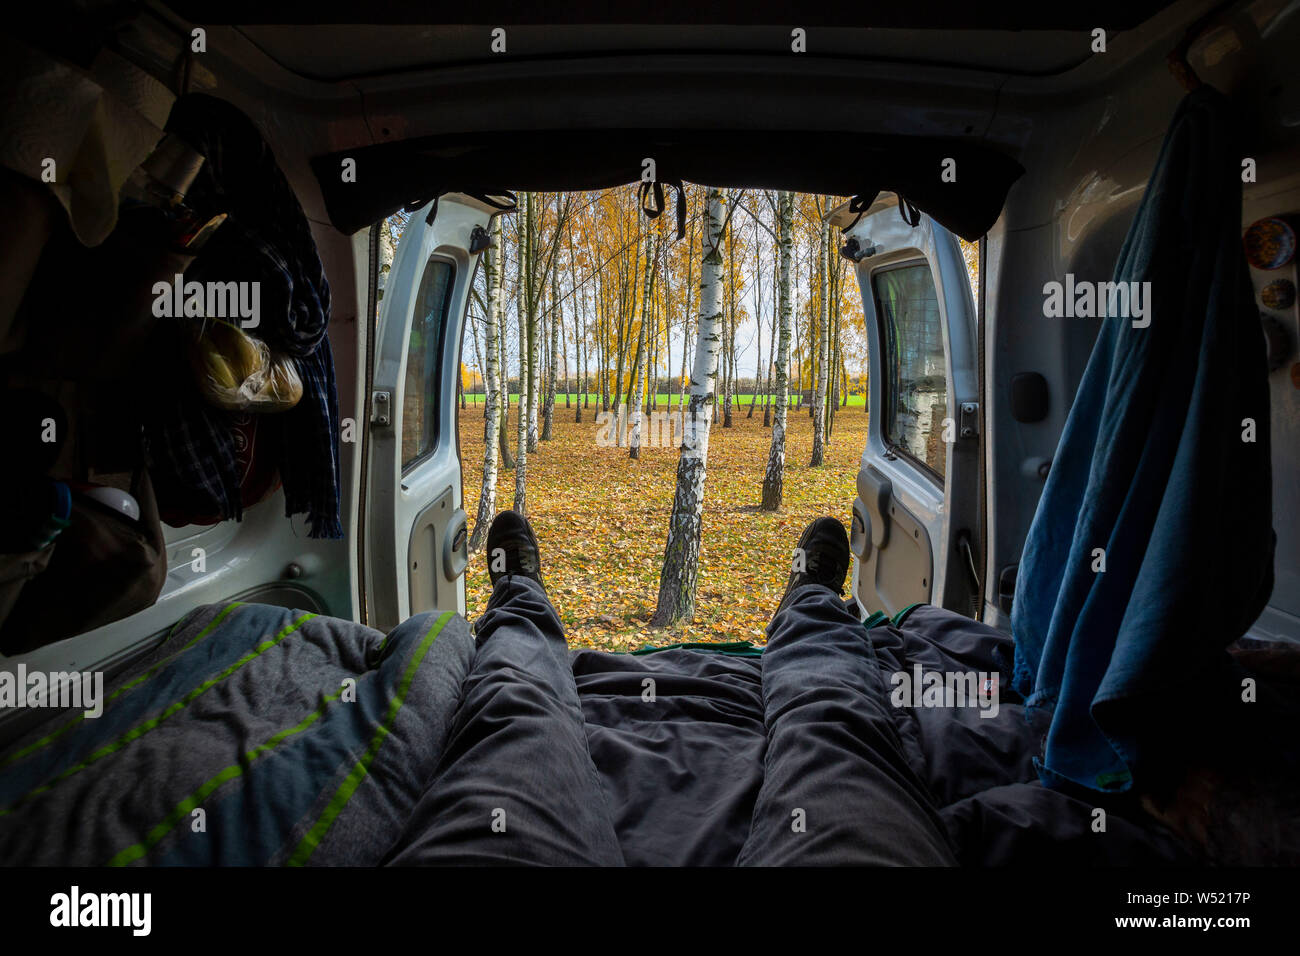 Van life backdoor view during a road trip in Poland. Stock Photo